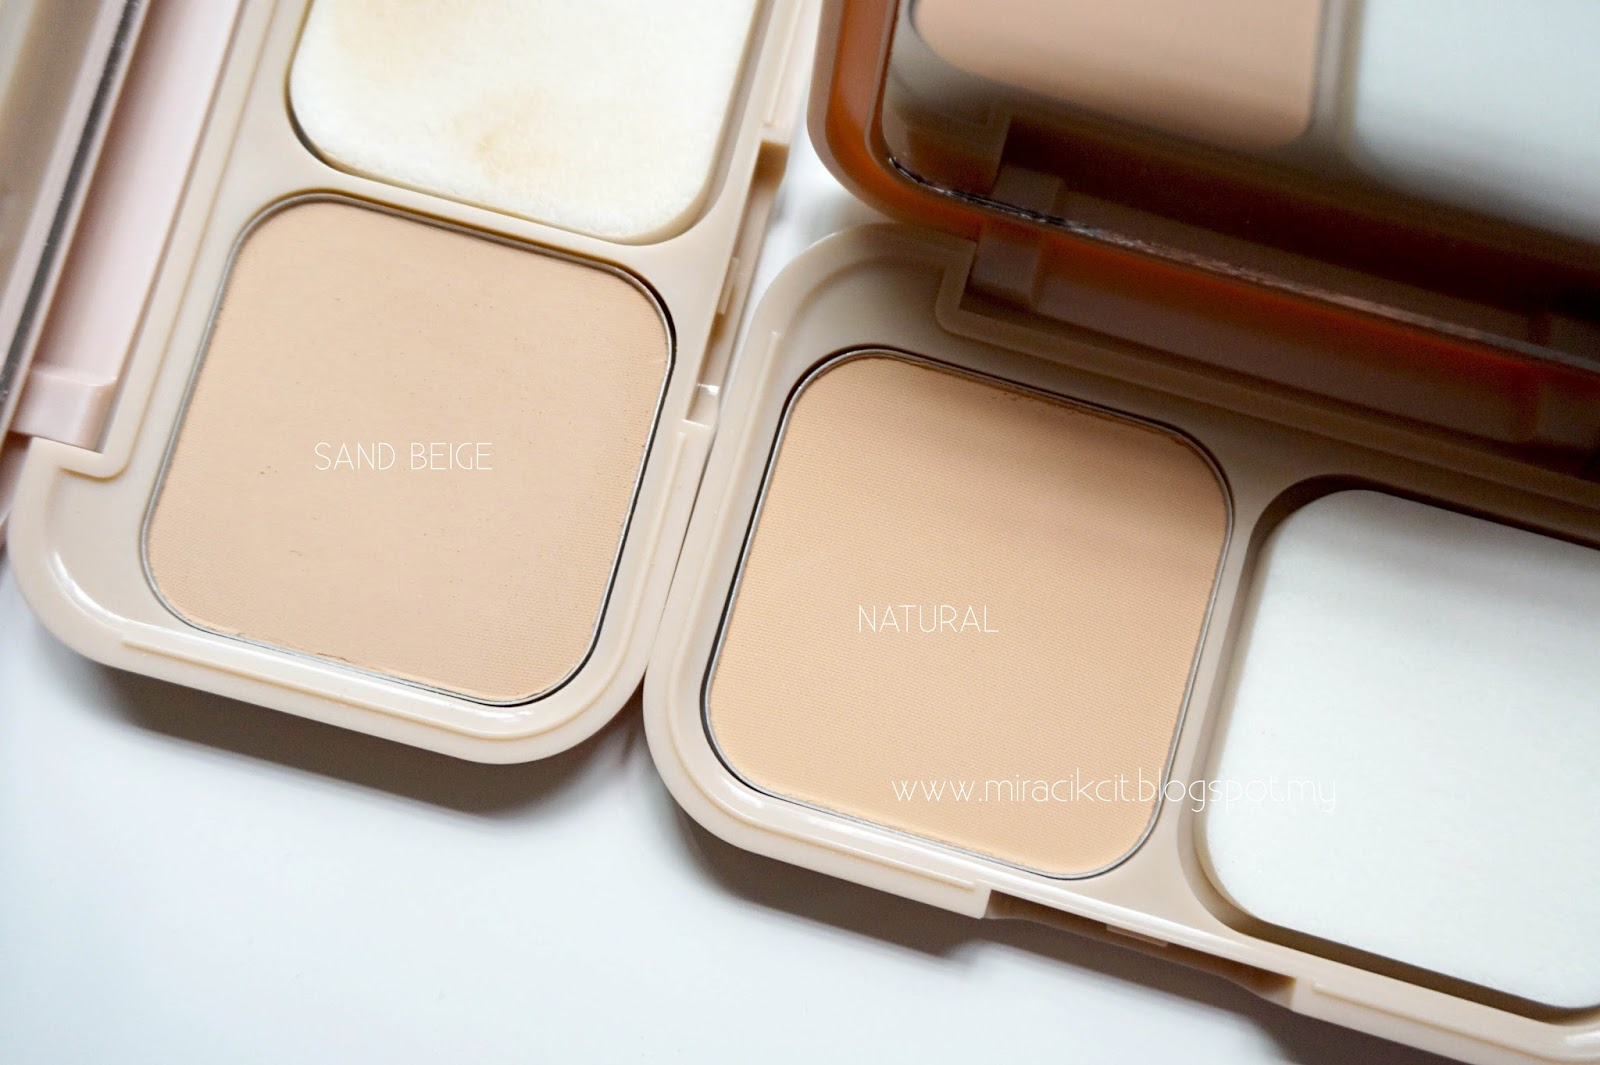 Review Maybelline New York Dream Satin Skin Compact Powder Two Way Cake 01 Light I Own 2 Shades Which Is Sand Beige And Also Natural Since Im Slighter Dark Gave The Shade To My Mum Inside Of Looks Exactly